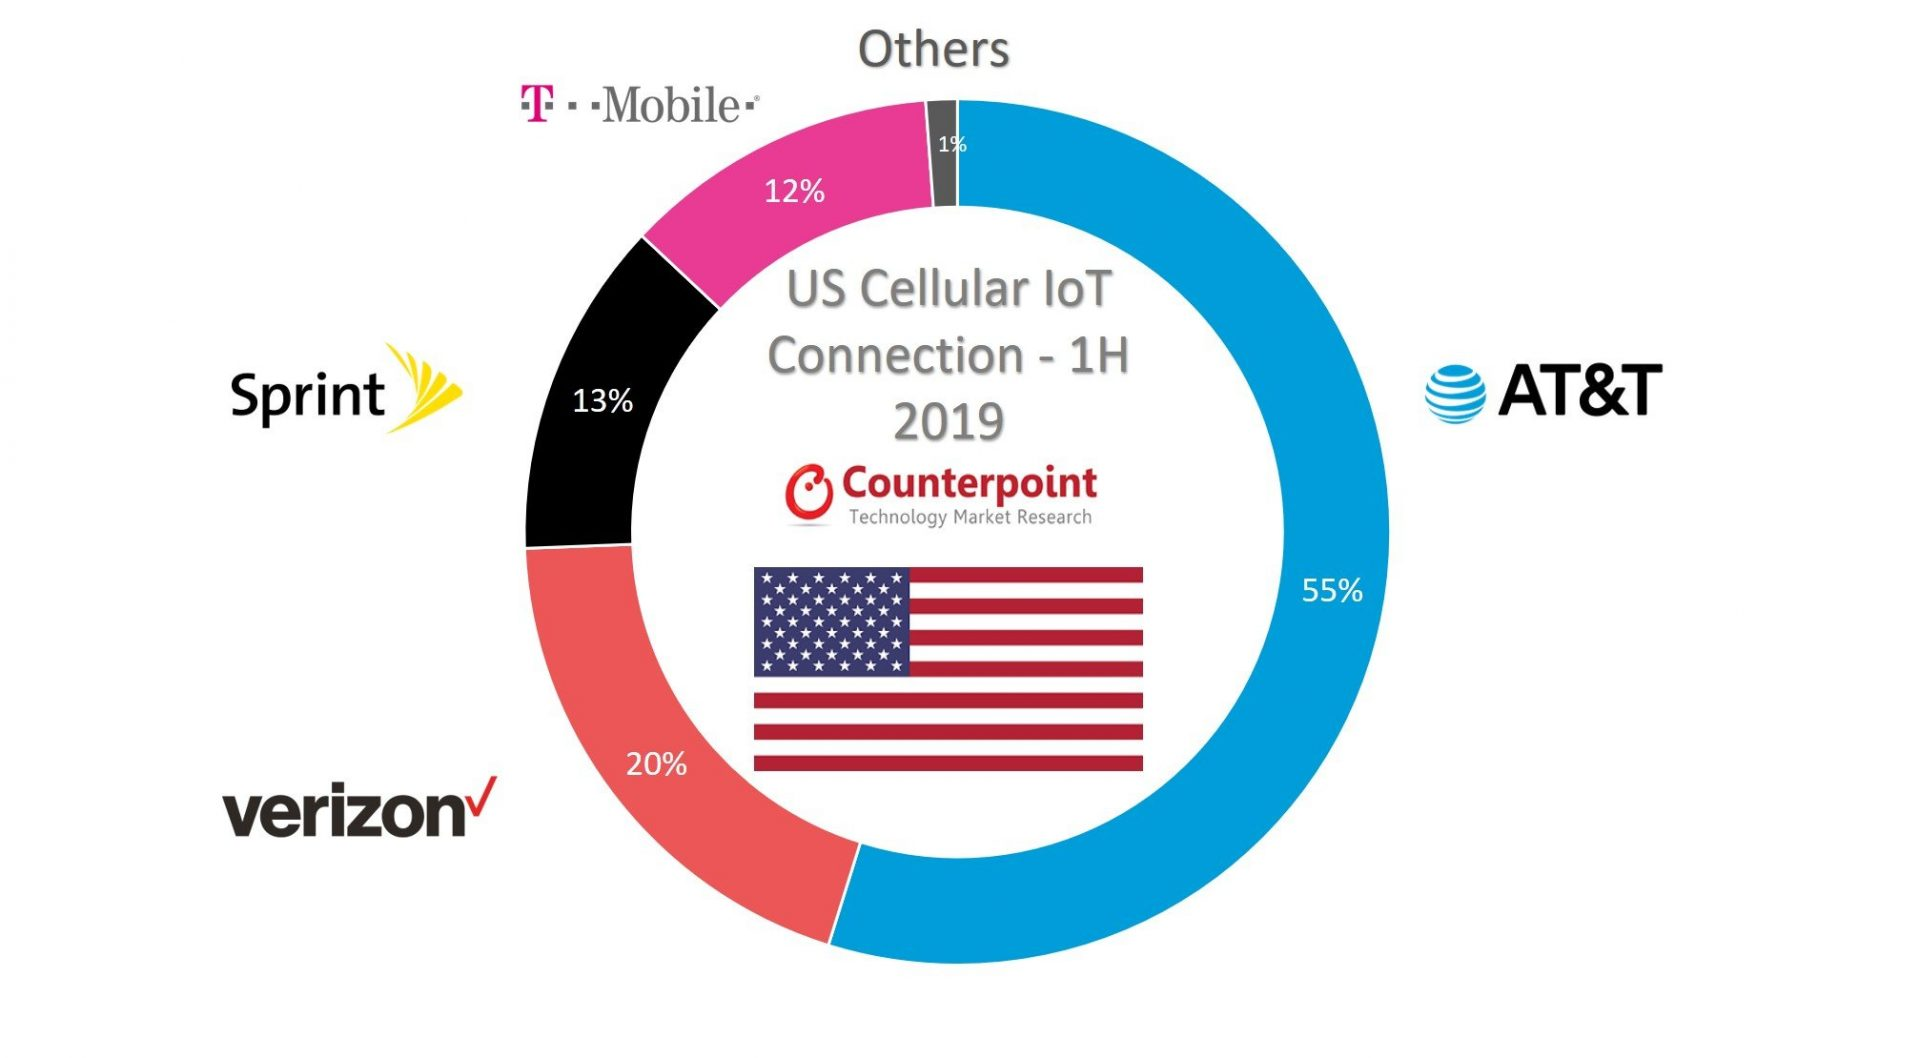 US Cellular IoT Connection by Operator